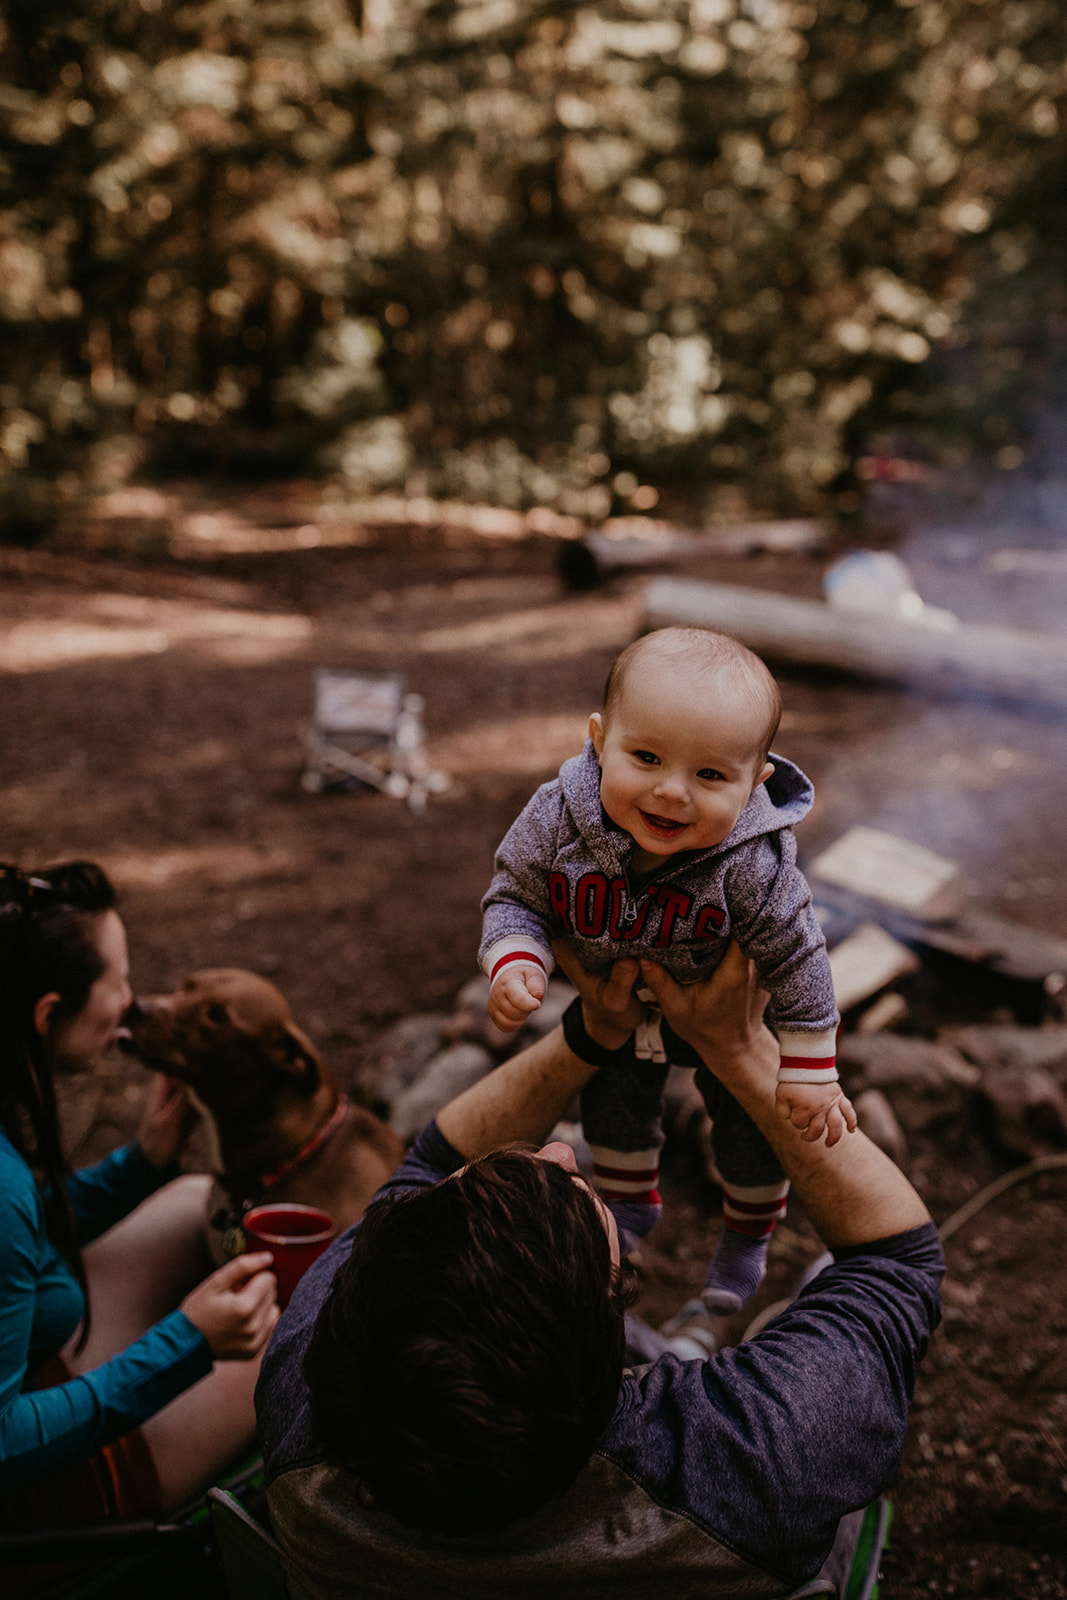 kachess-lake-camping-family-portraits-megan-gallagher-photography_(27_of_335).jpg